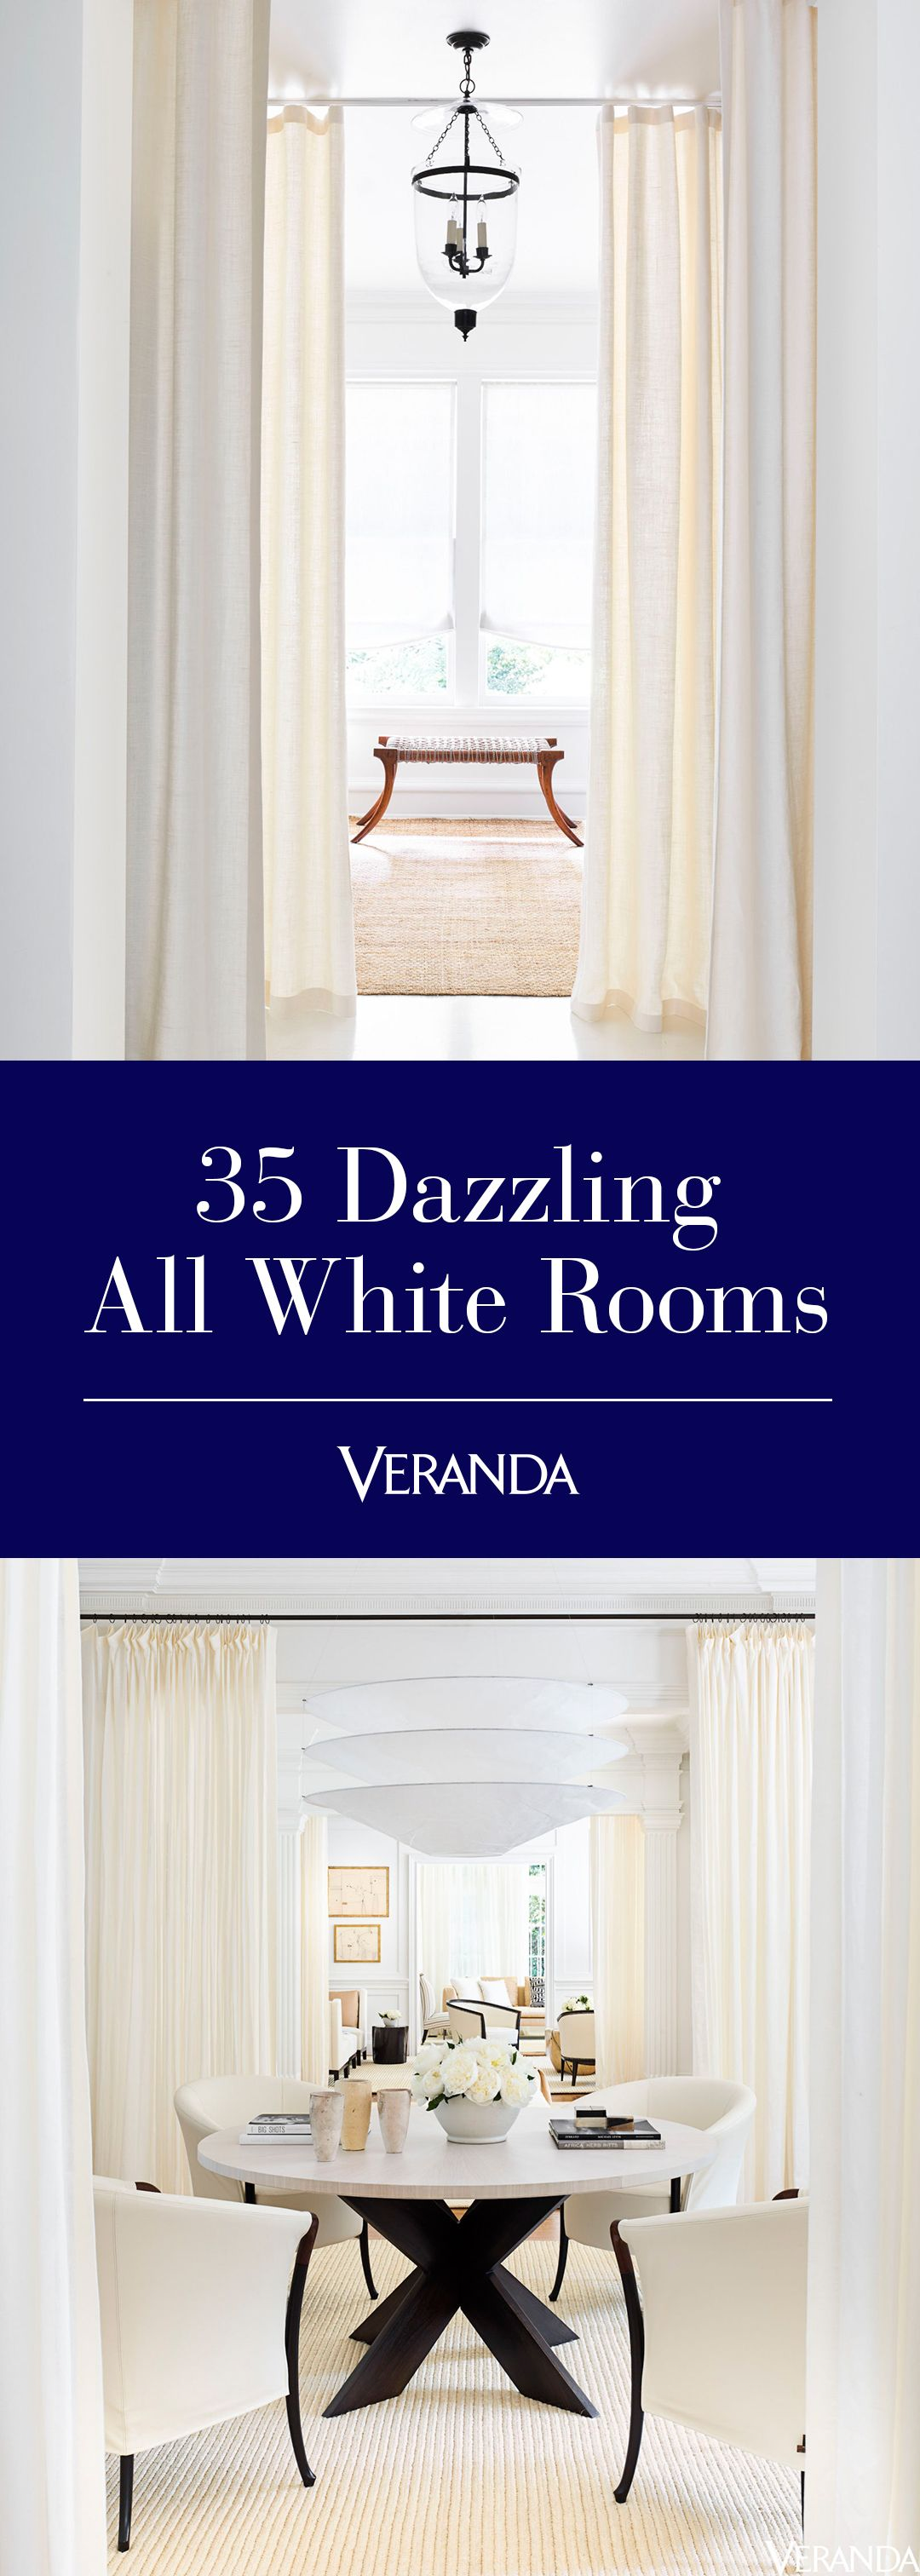 & 25+ Best White Room Ideas - How to Decorate an Elegant White Bedroom